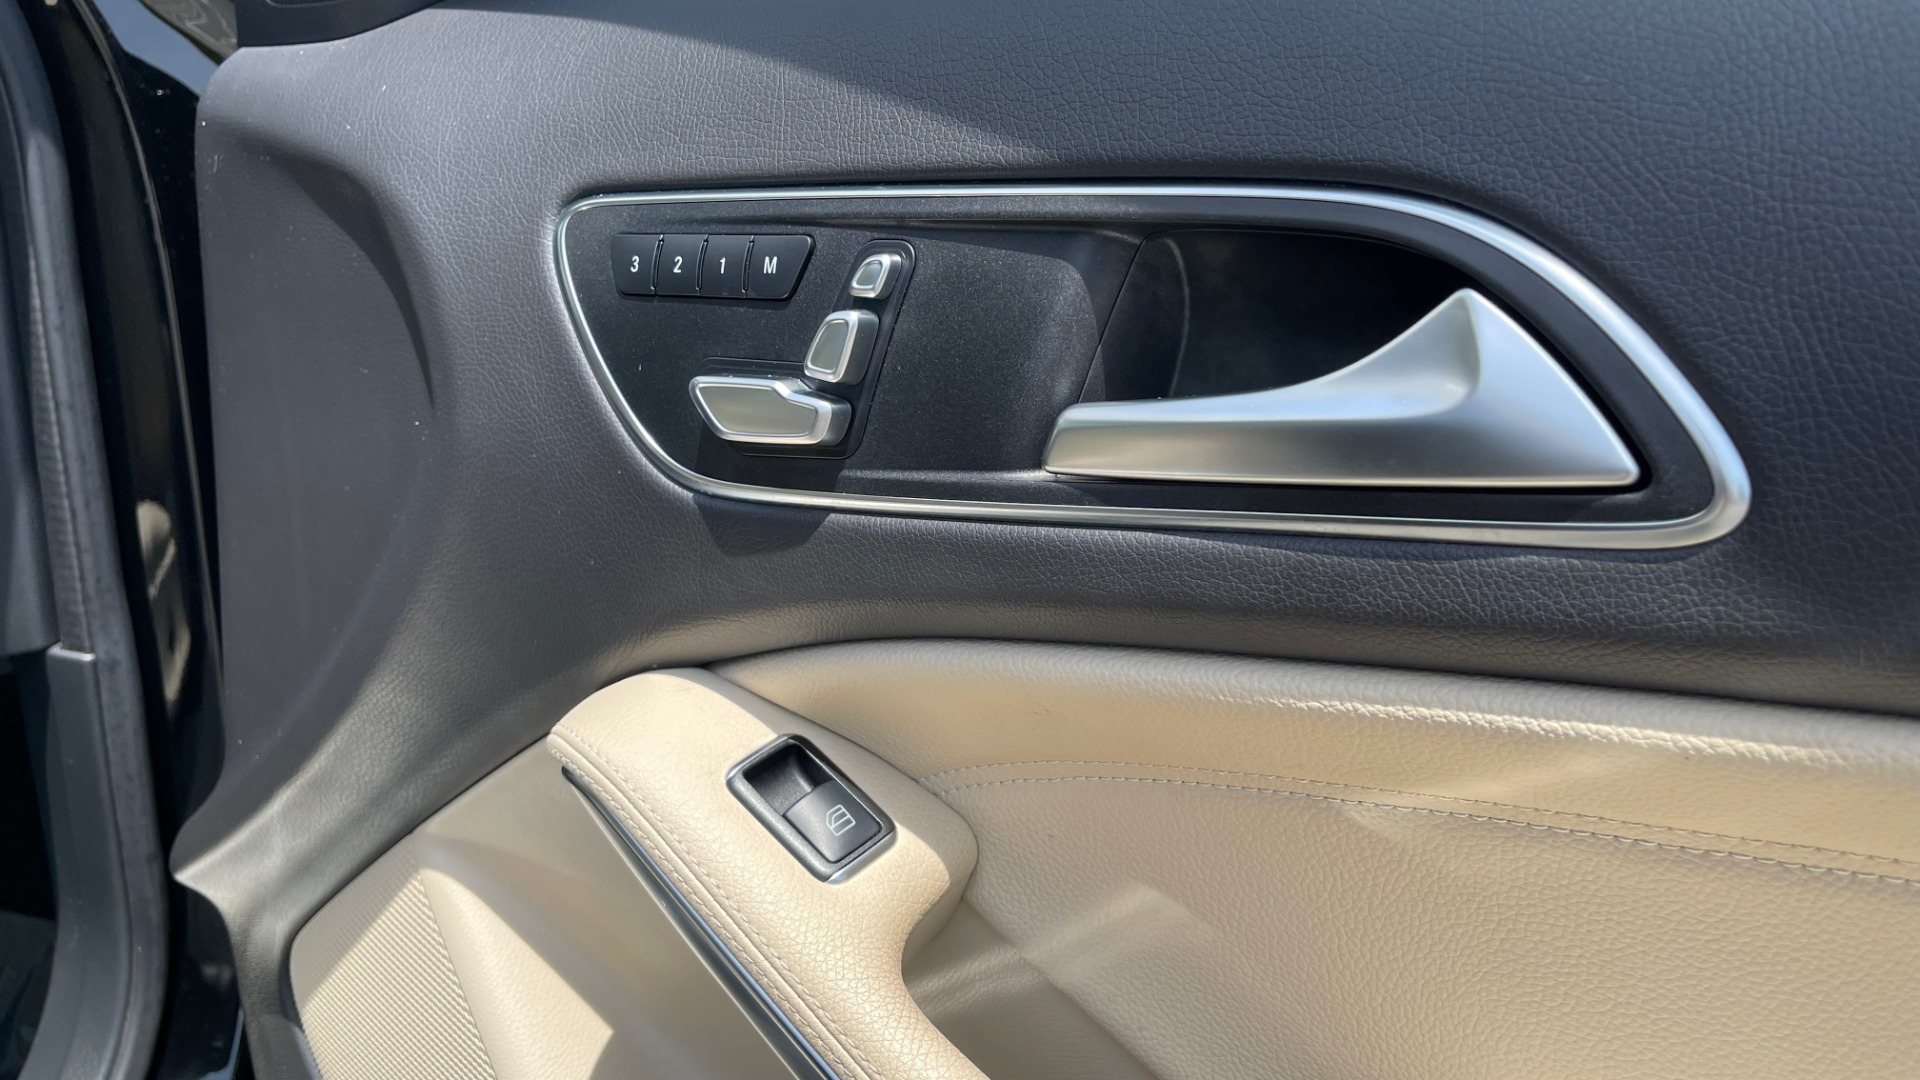 Used 2018 Mercedes-Benz GLA 250 4MATIC SUV / PANO-ROOF / HTD STS / BLIND SPOT ASST / APPLE for sale $31,995 at Formula Imports in Charlotte NC 28227 73